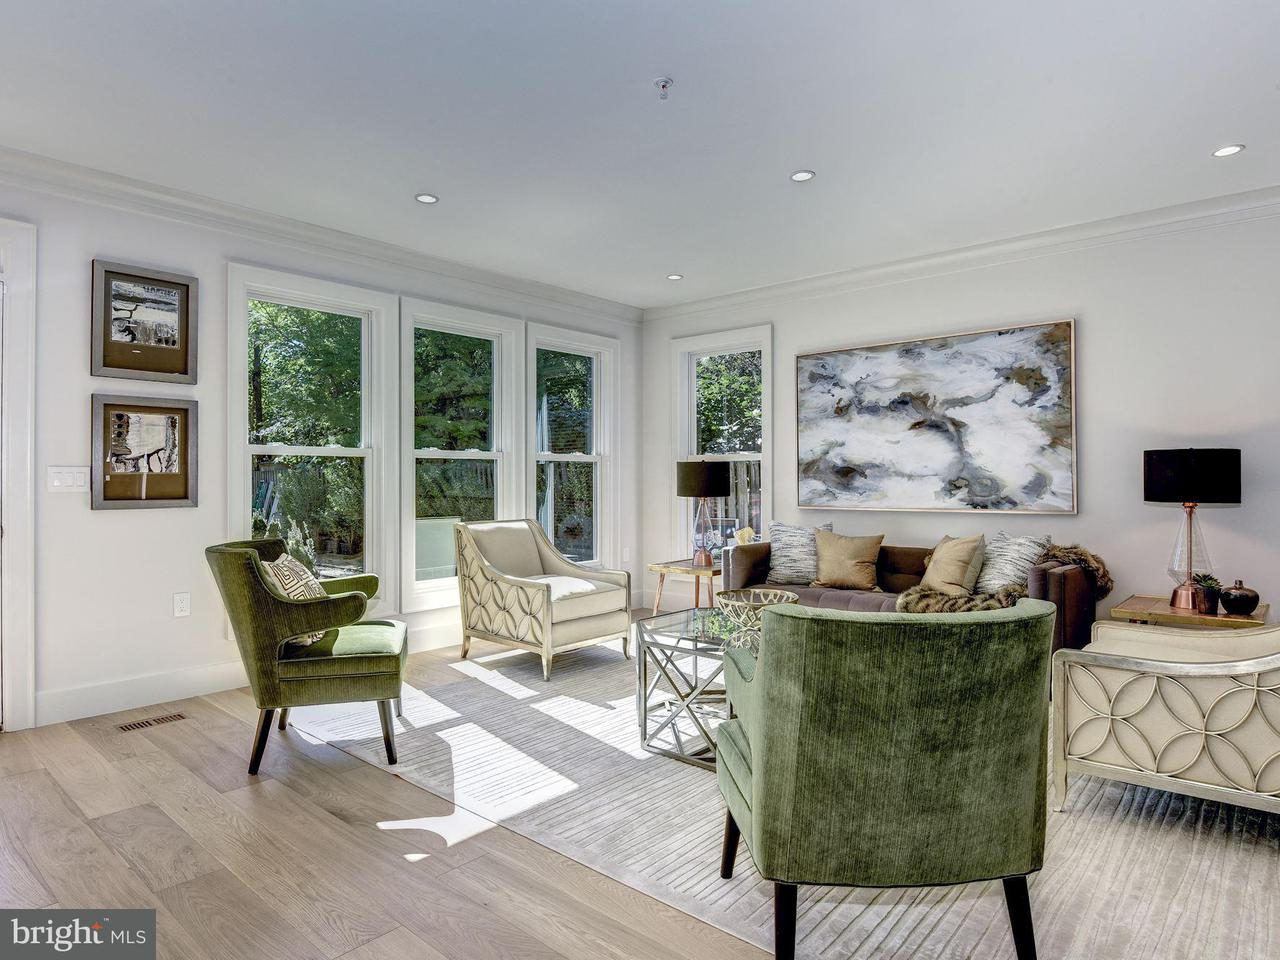 Additional photo for property listing at 3324 Dent Pl Nw 3324 Dent Pl Nw Washington, 哥倫比亞特區 20007 美國